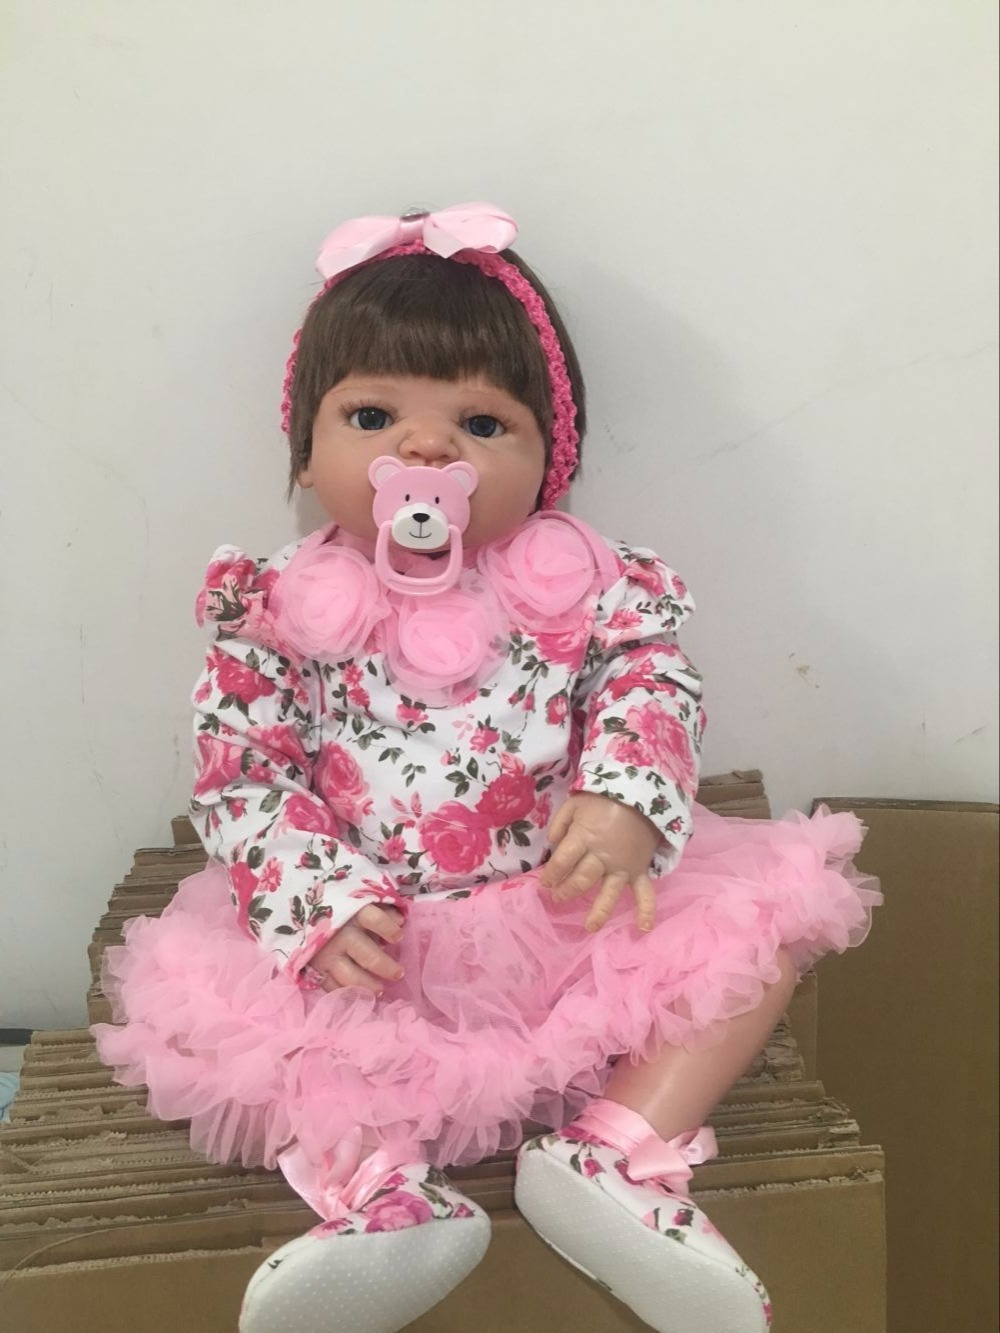 55cm Full Body Silicone Reborn Baby Doll Toys 22 Lifelike Newborn Girl Babies Dolls Gift Birthday Gift Bathe Toy full silicone body reborn baby doll toys lifelike 55cm newborn boy babies dolls for kids fashion birthday present bathe toy